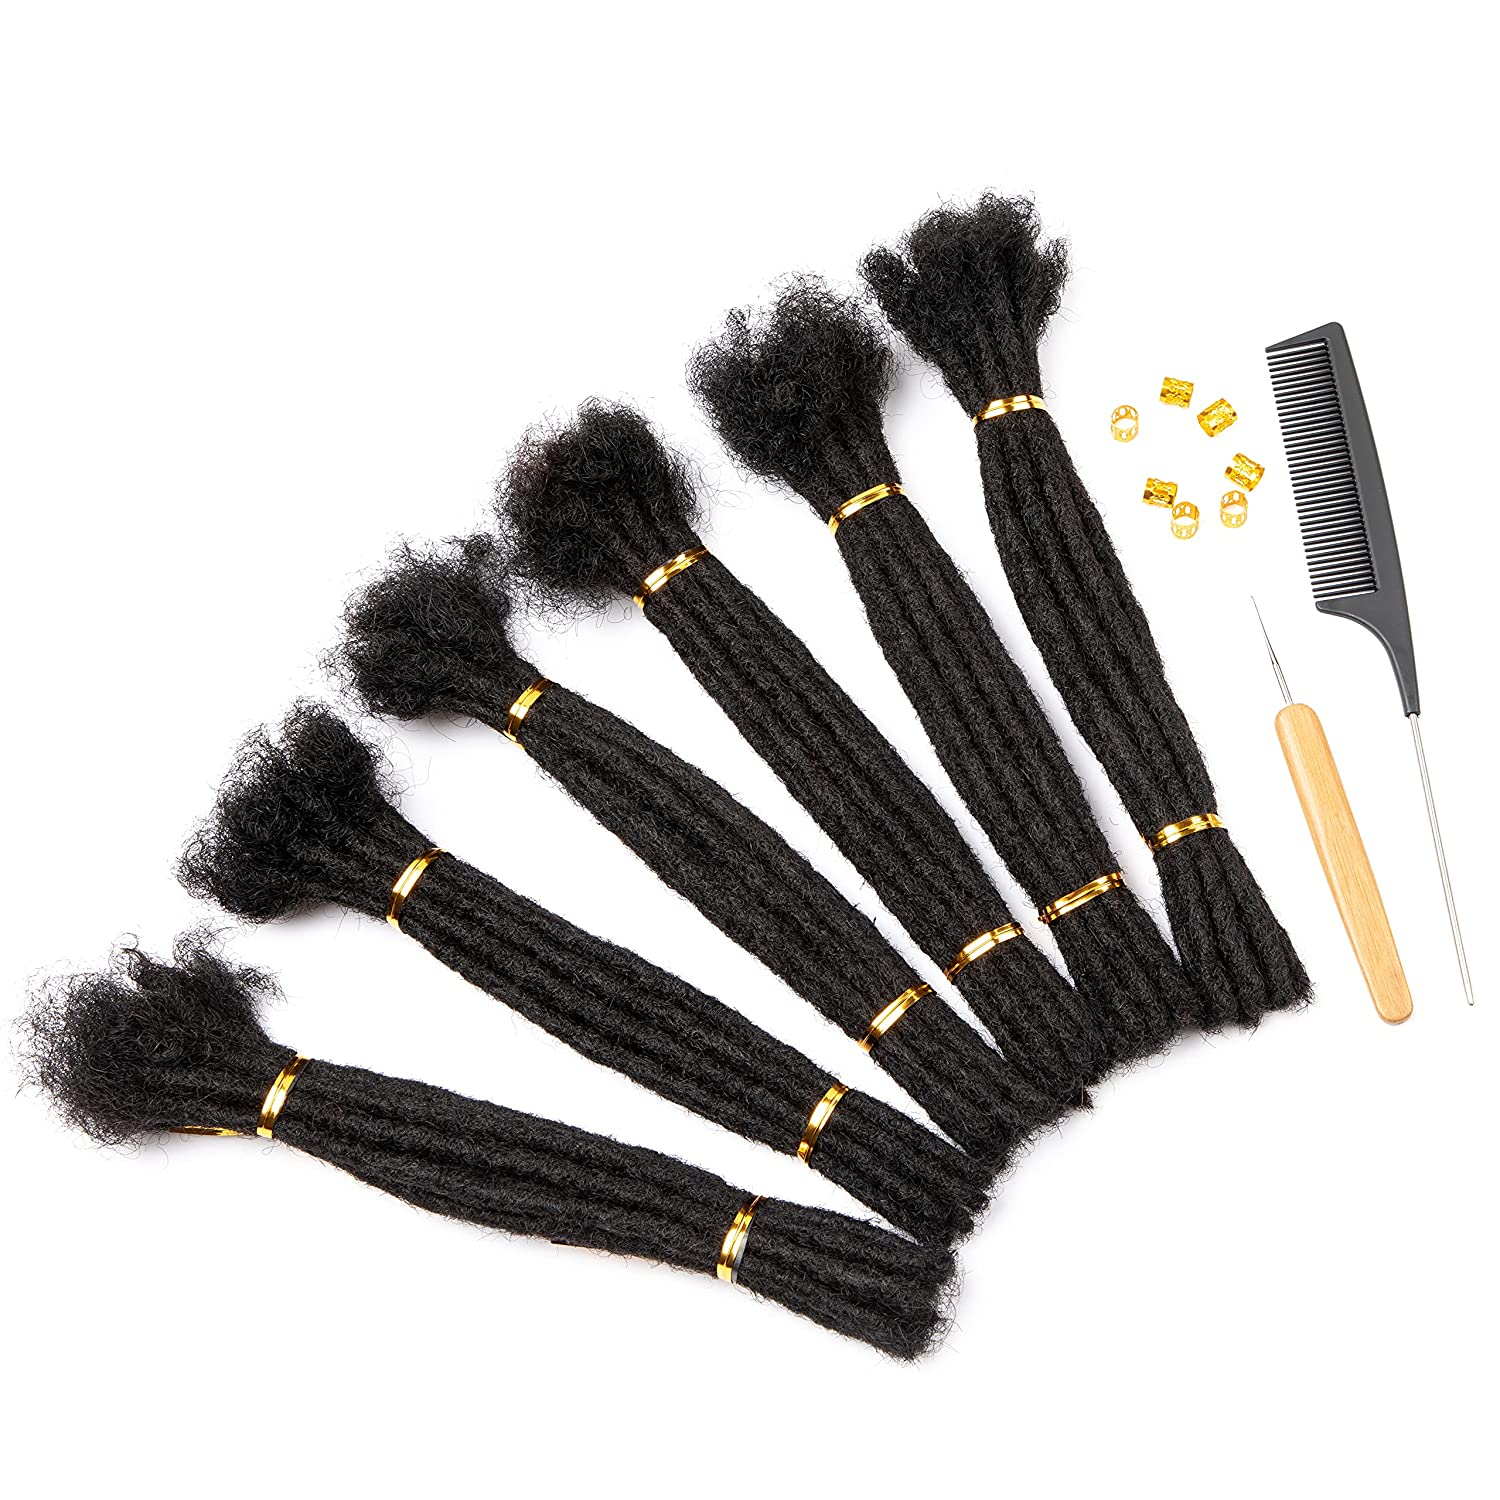 Originea Dreadlock Extensions Made From Perm Manufacturer regenerated Max 45% OFF product Hair Handmade Human